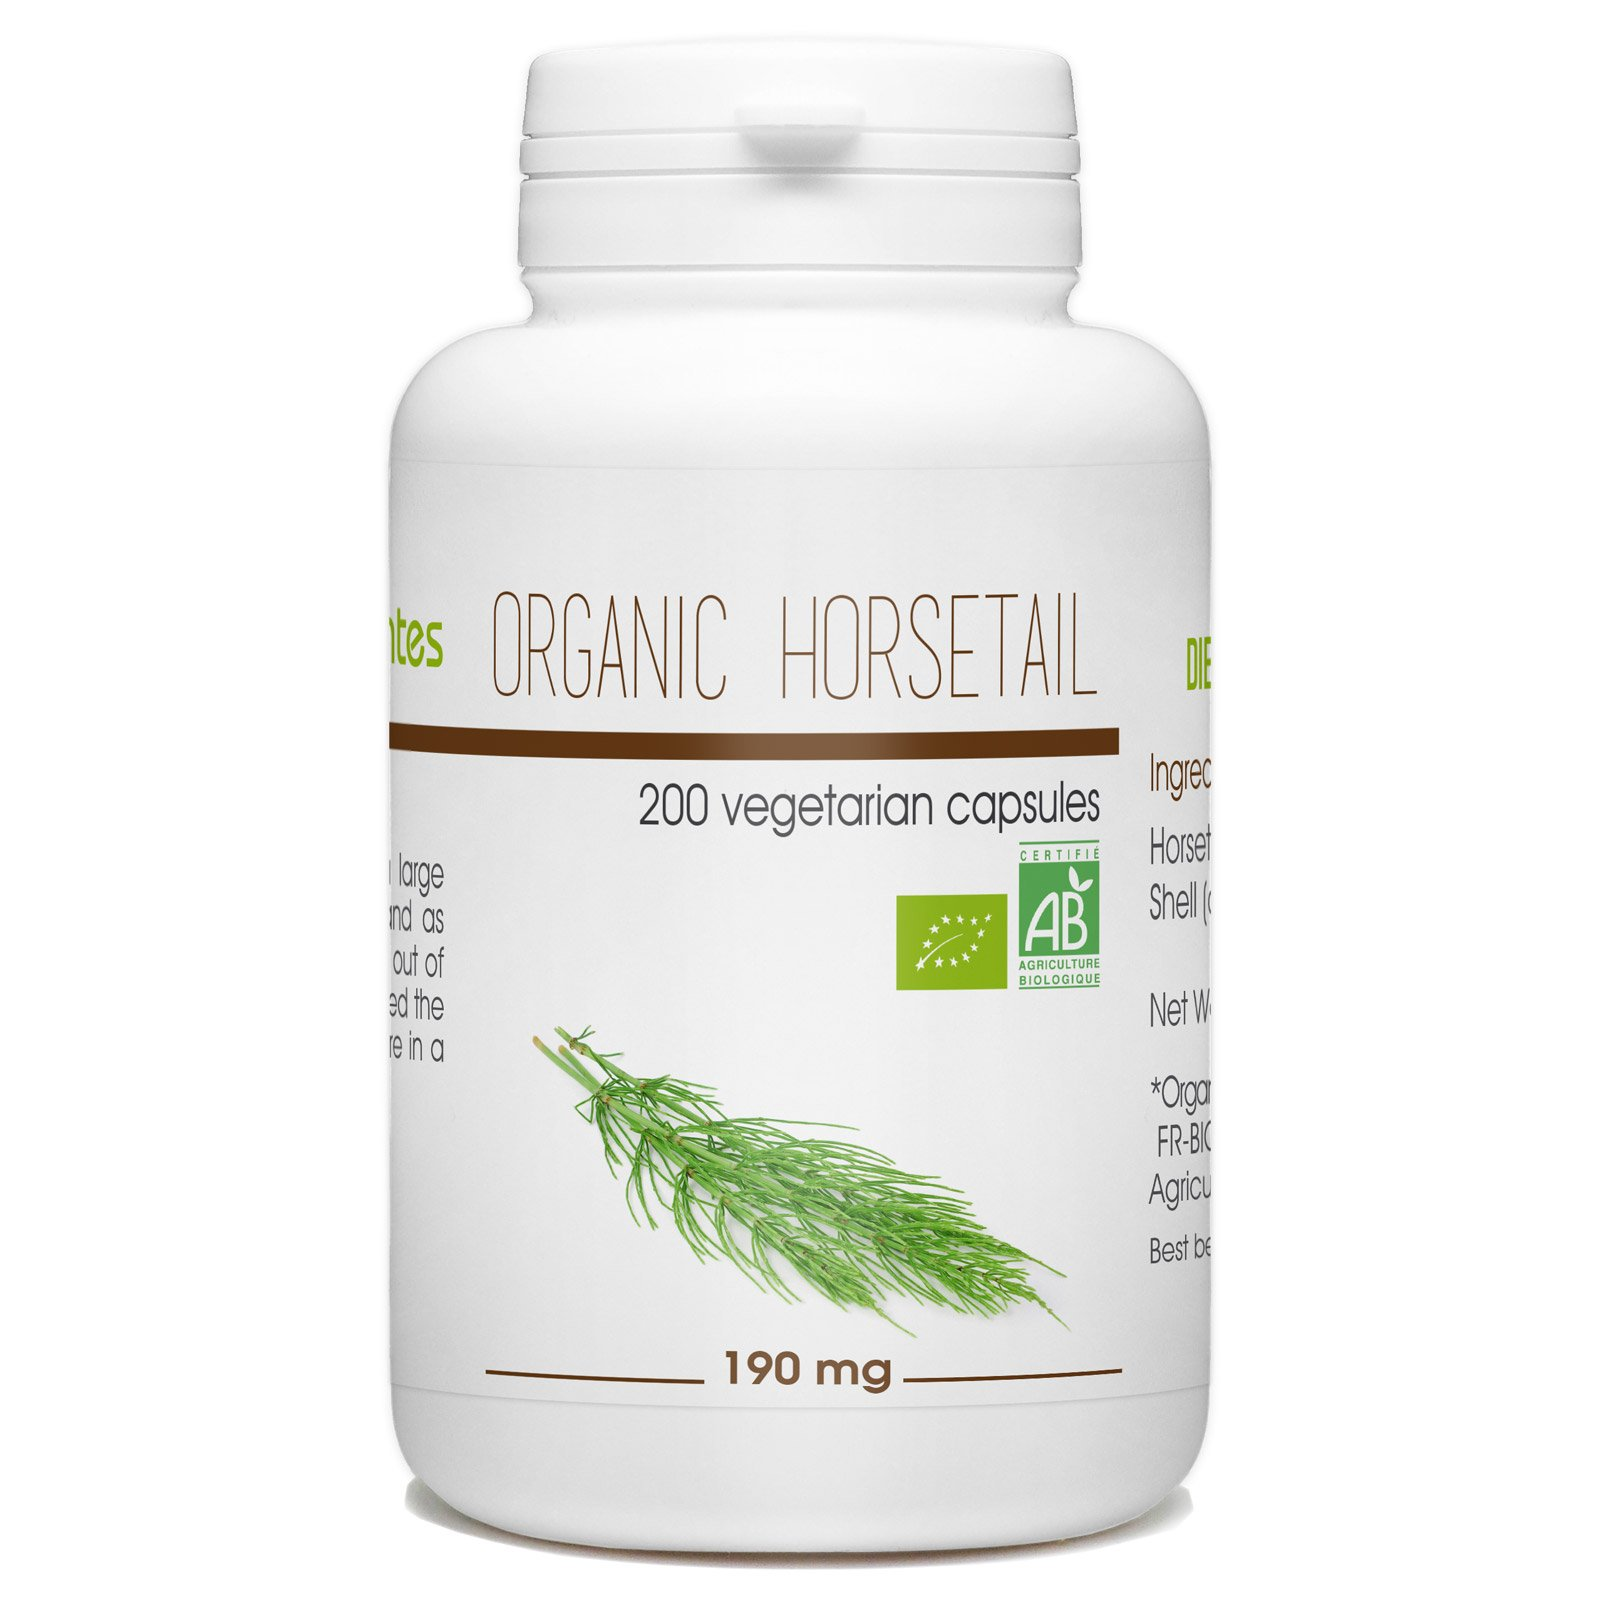 Horsetail 200 Organic Vegetarian Capsules 190 mg by Nature Land Candles